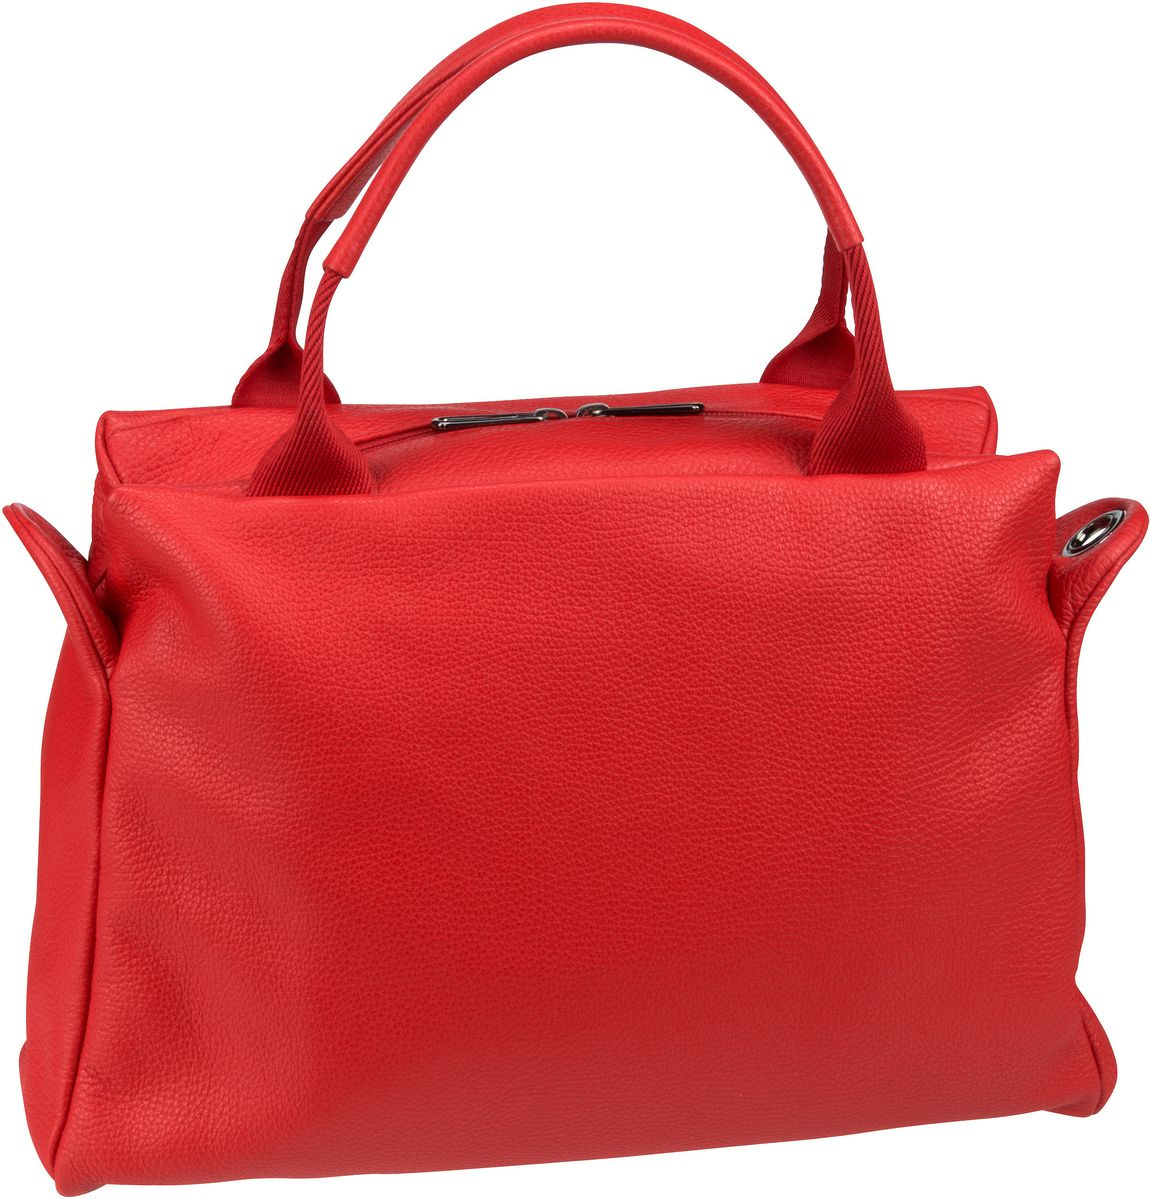 Handtasche Mellow Leather Boston Bag T87 Lacquer